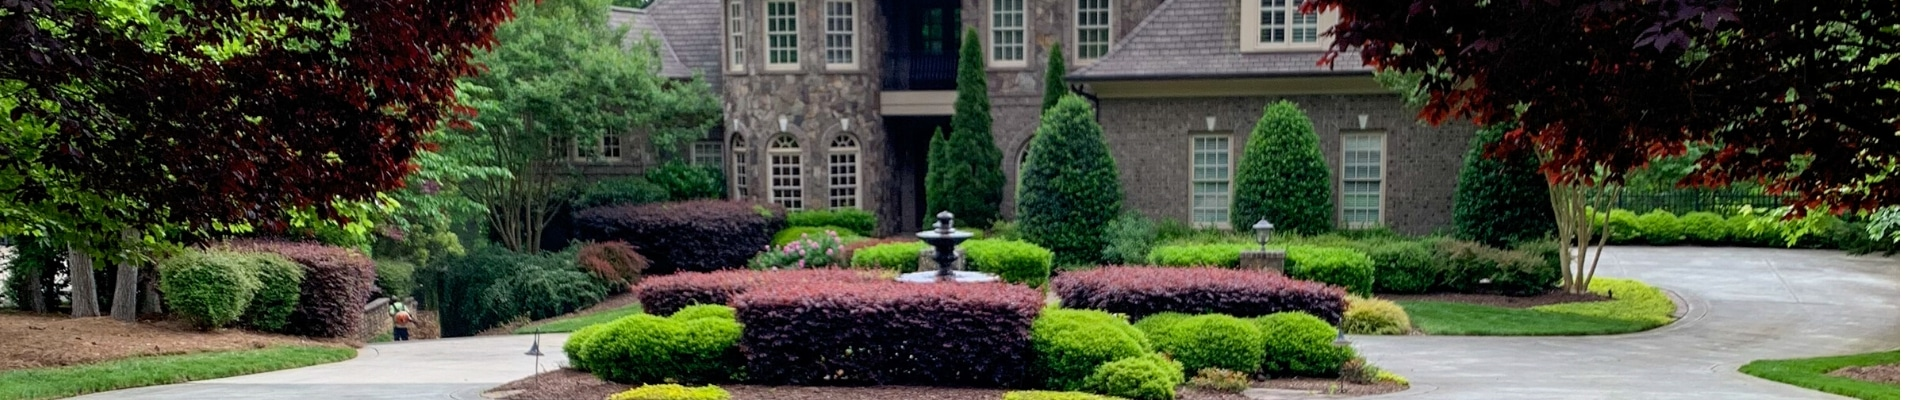 Estate in Raleigh, NC with a ECM Landscaping and Lawn Care employee finishing up a lawn service.